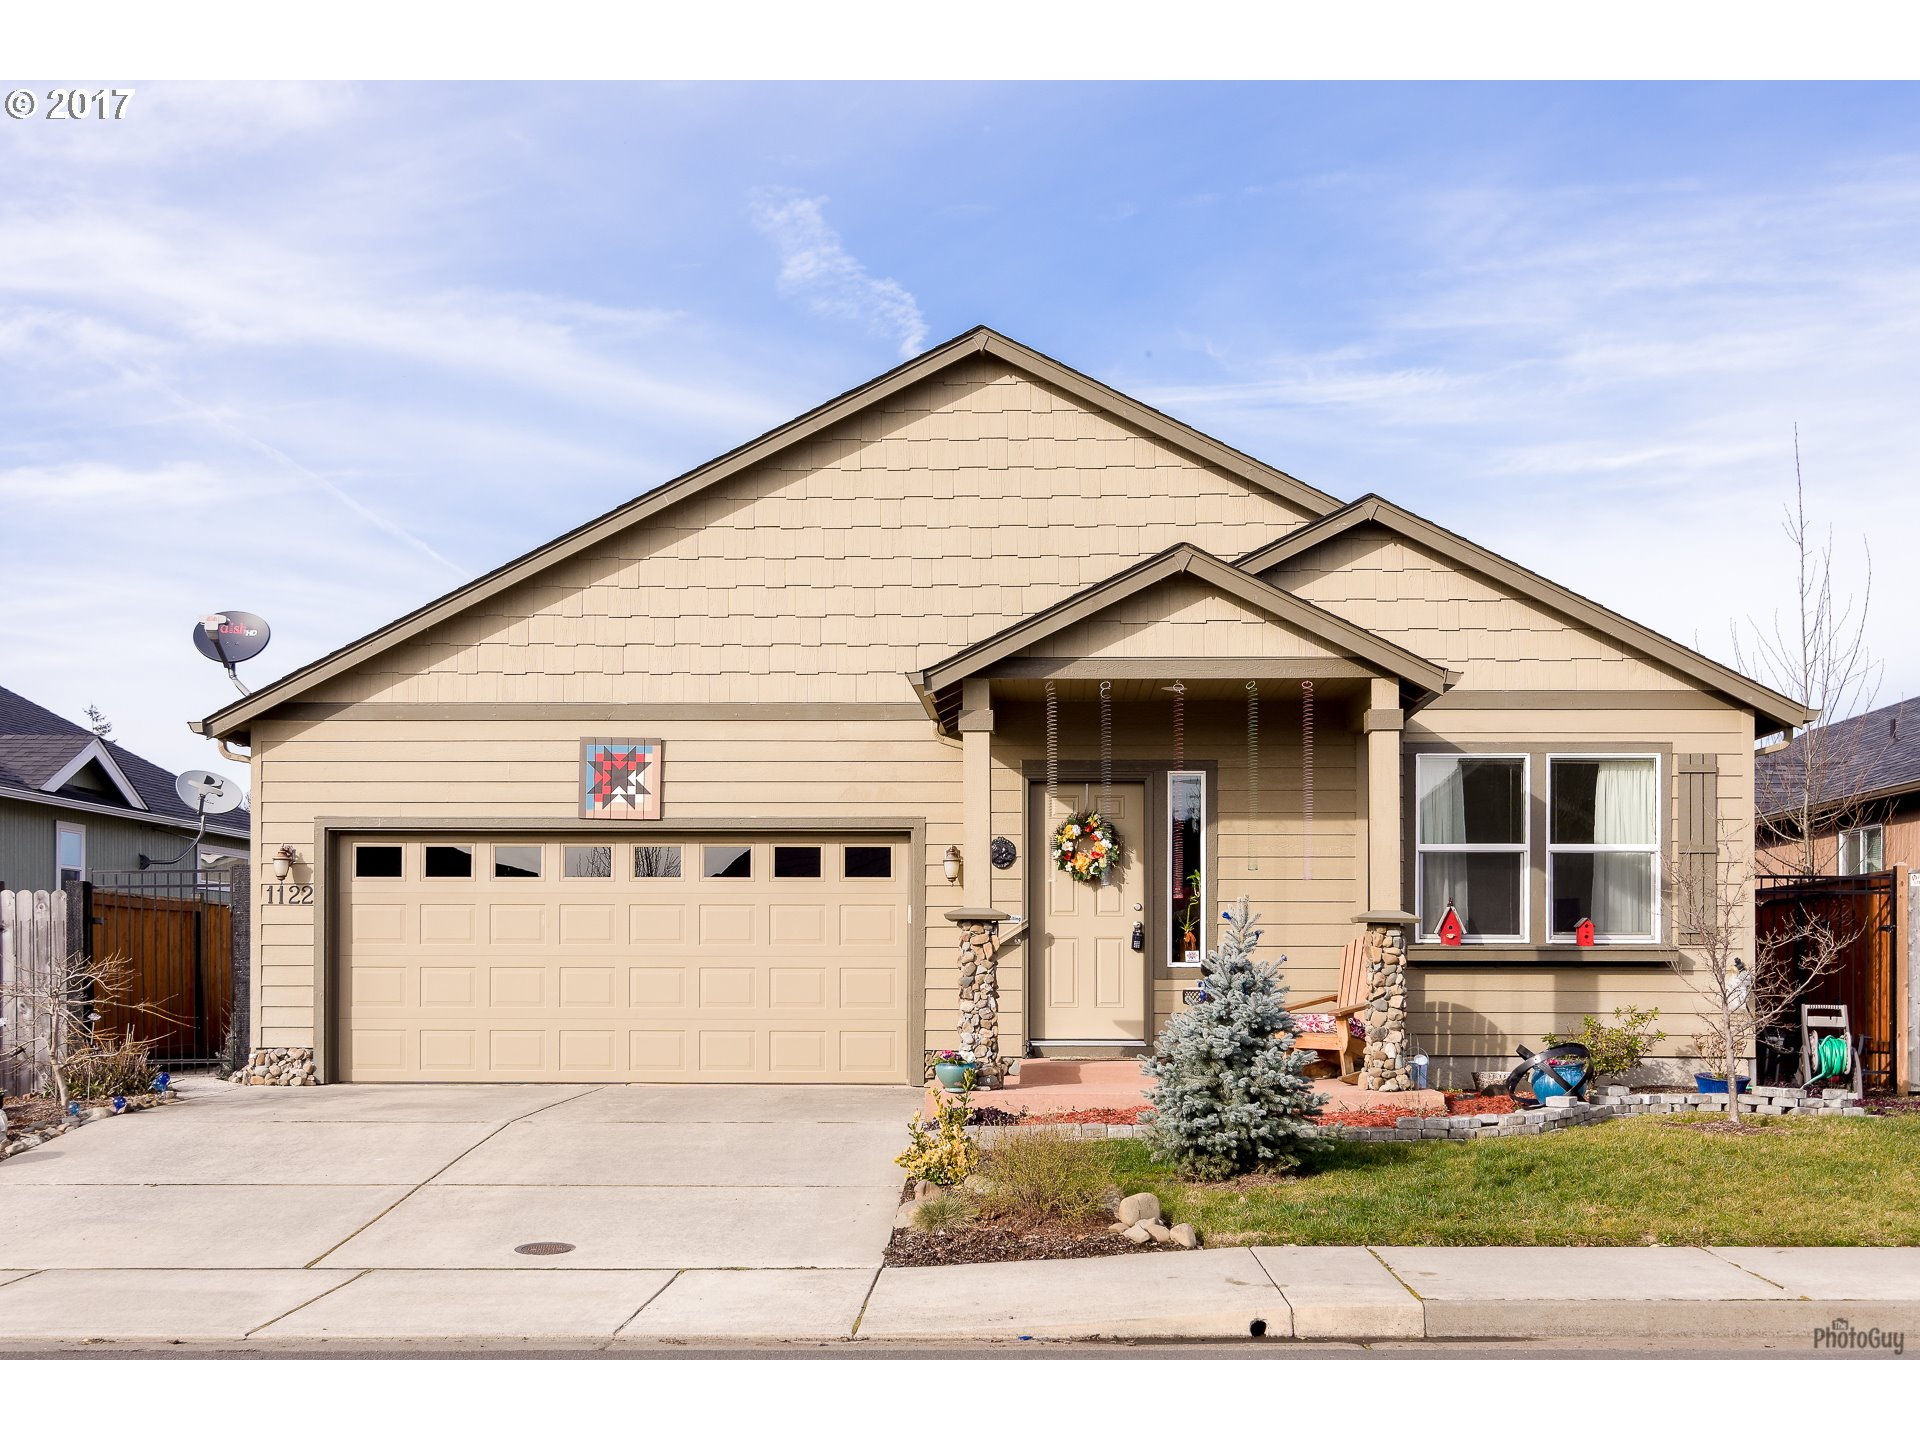 1122 S 2ND ST, Cottage Grove, OR 97424